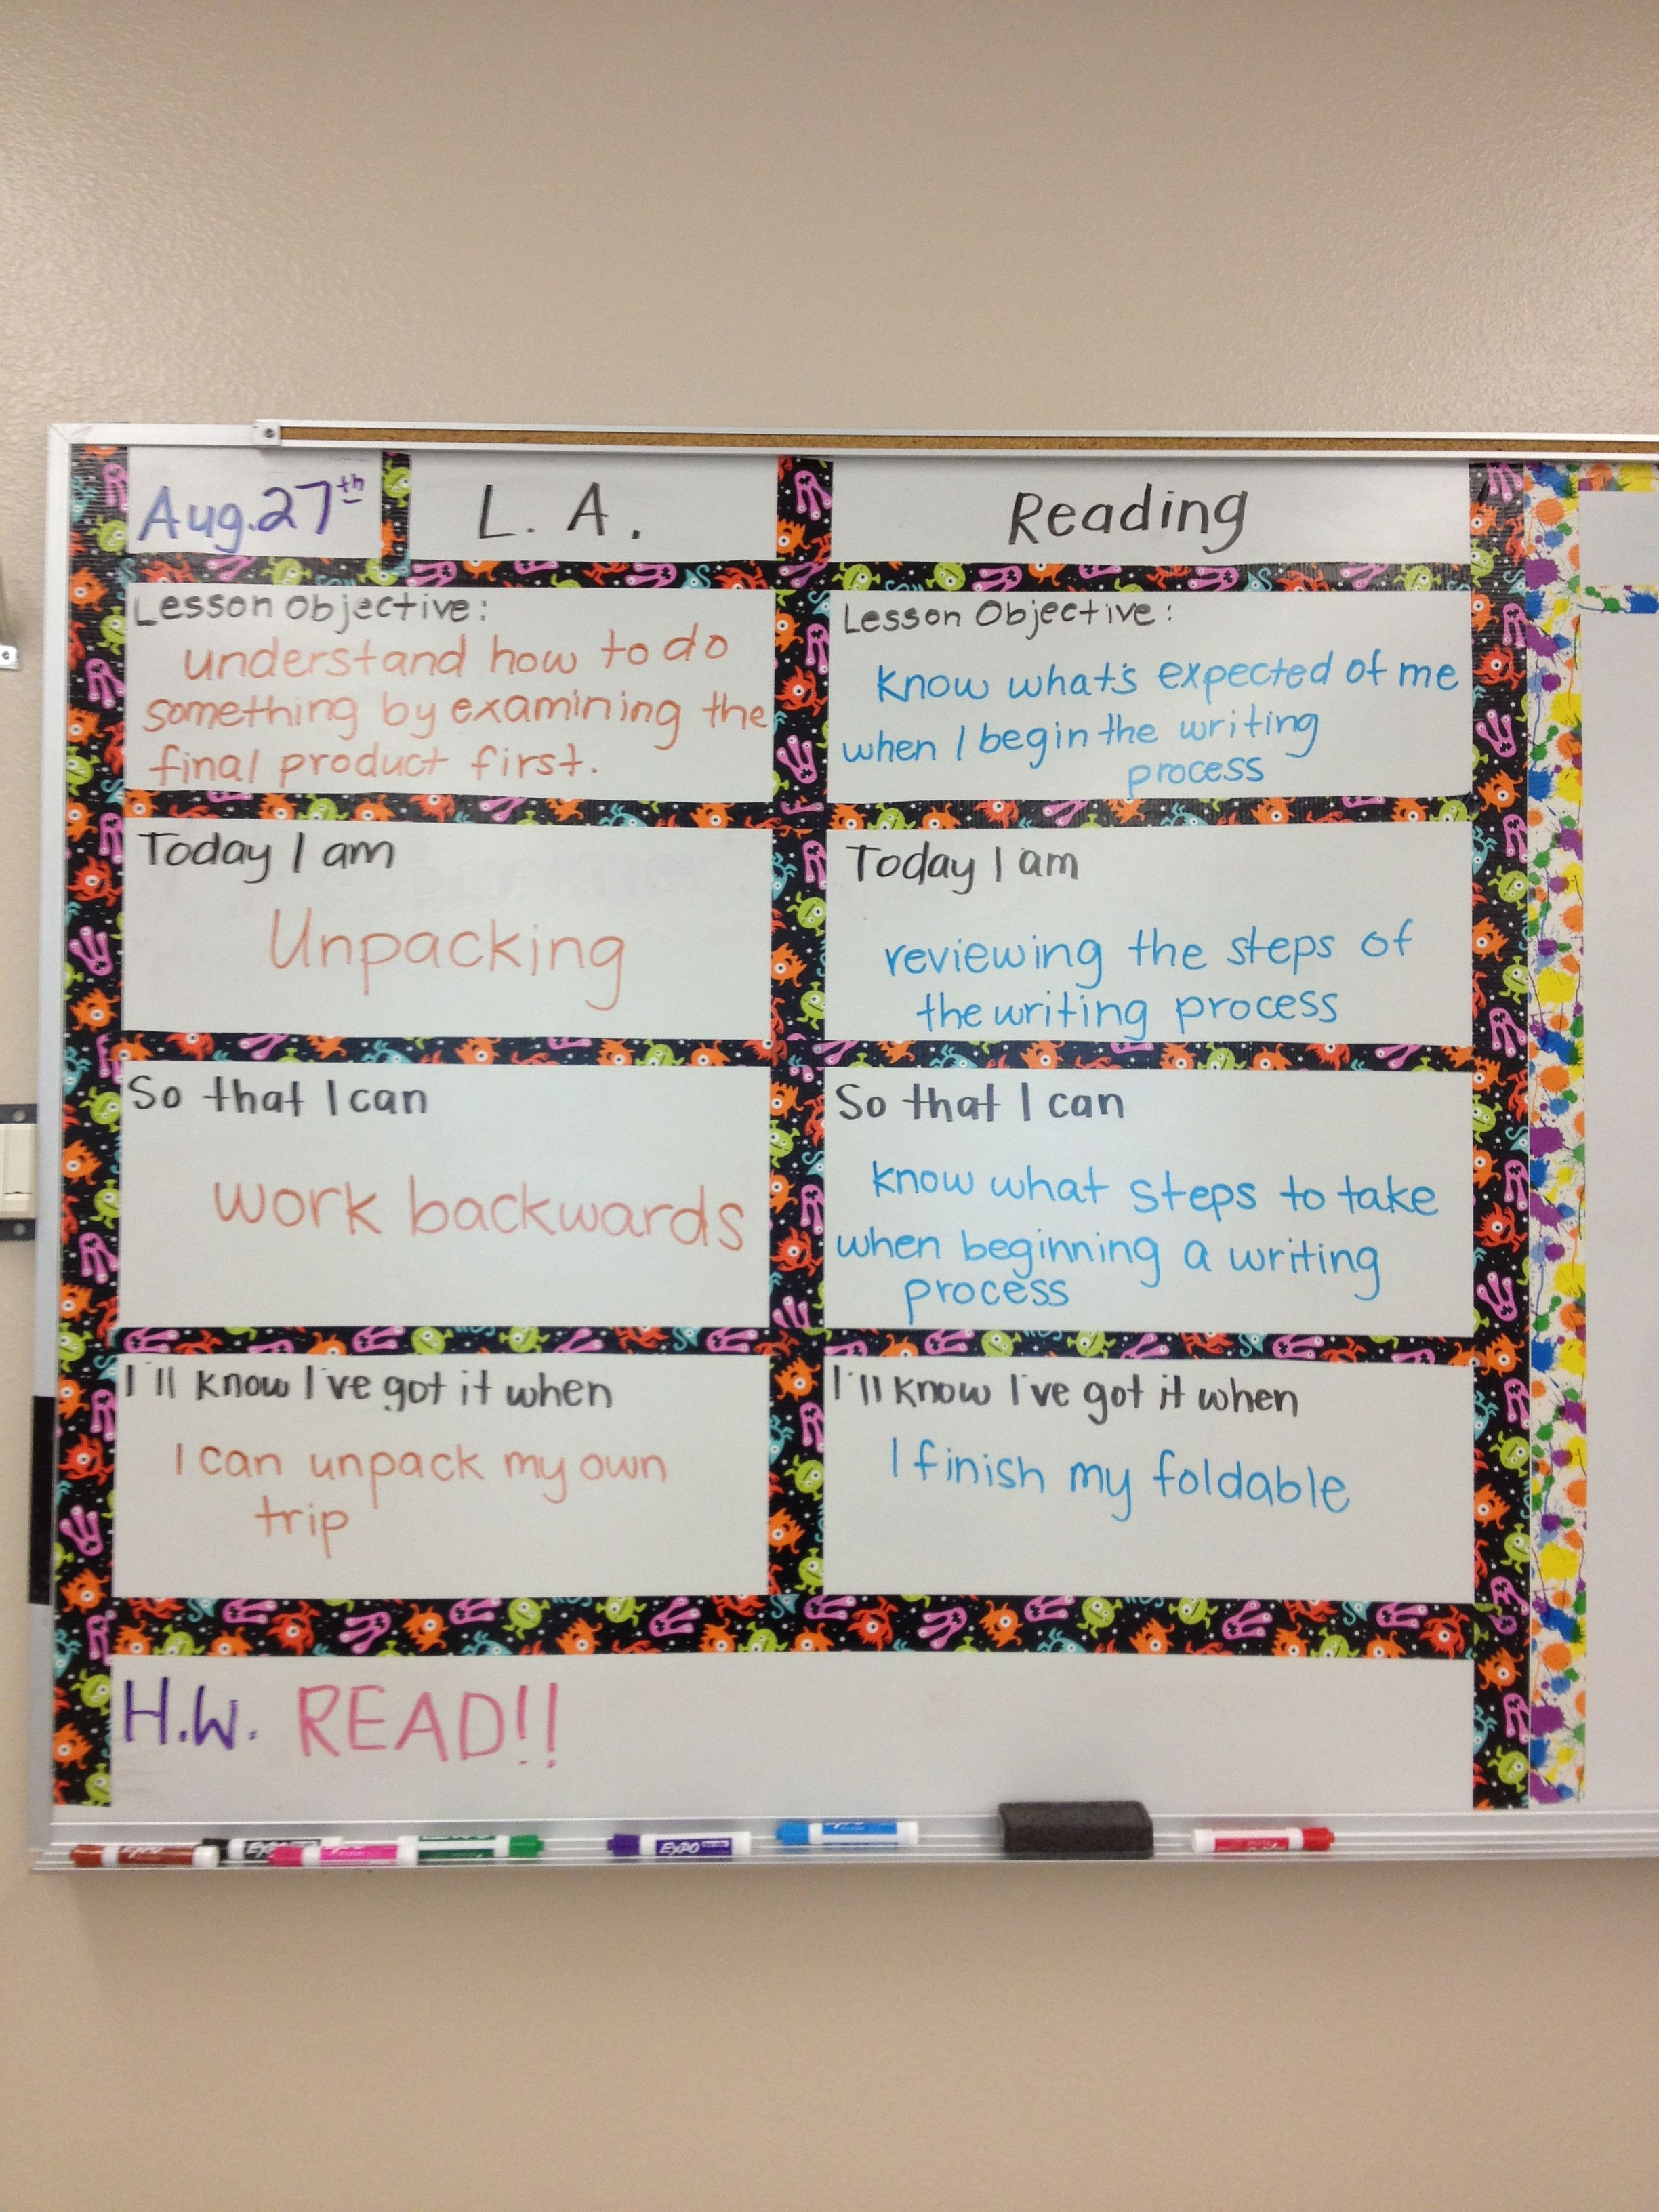 Marzano technique: posting your objective on the board. Works great ...